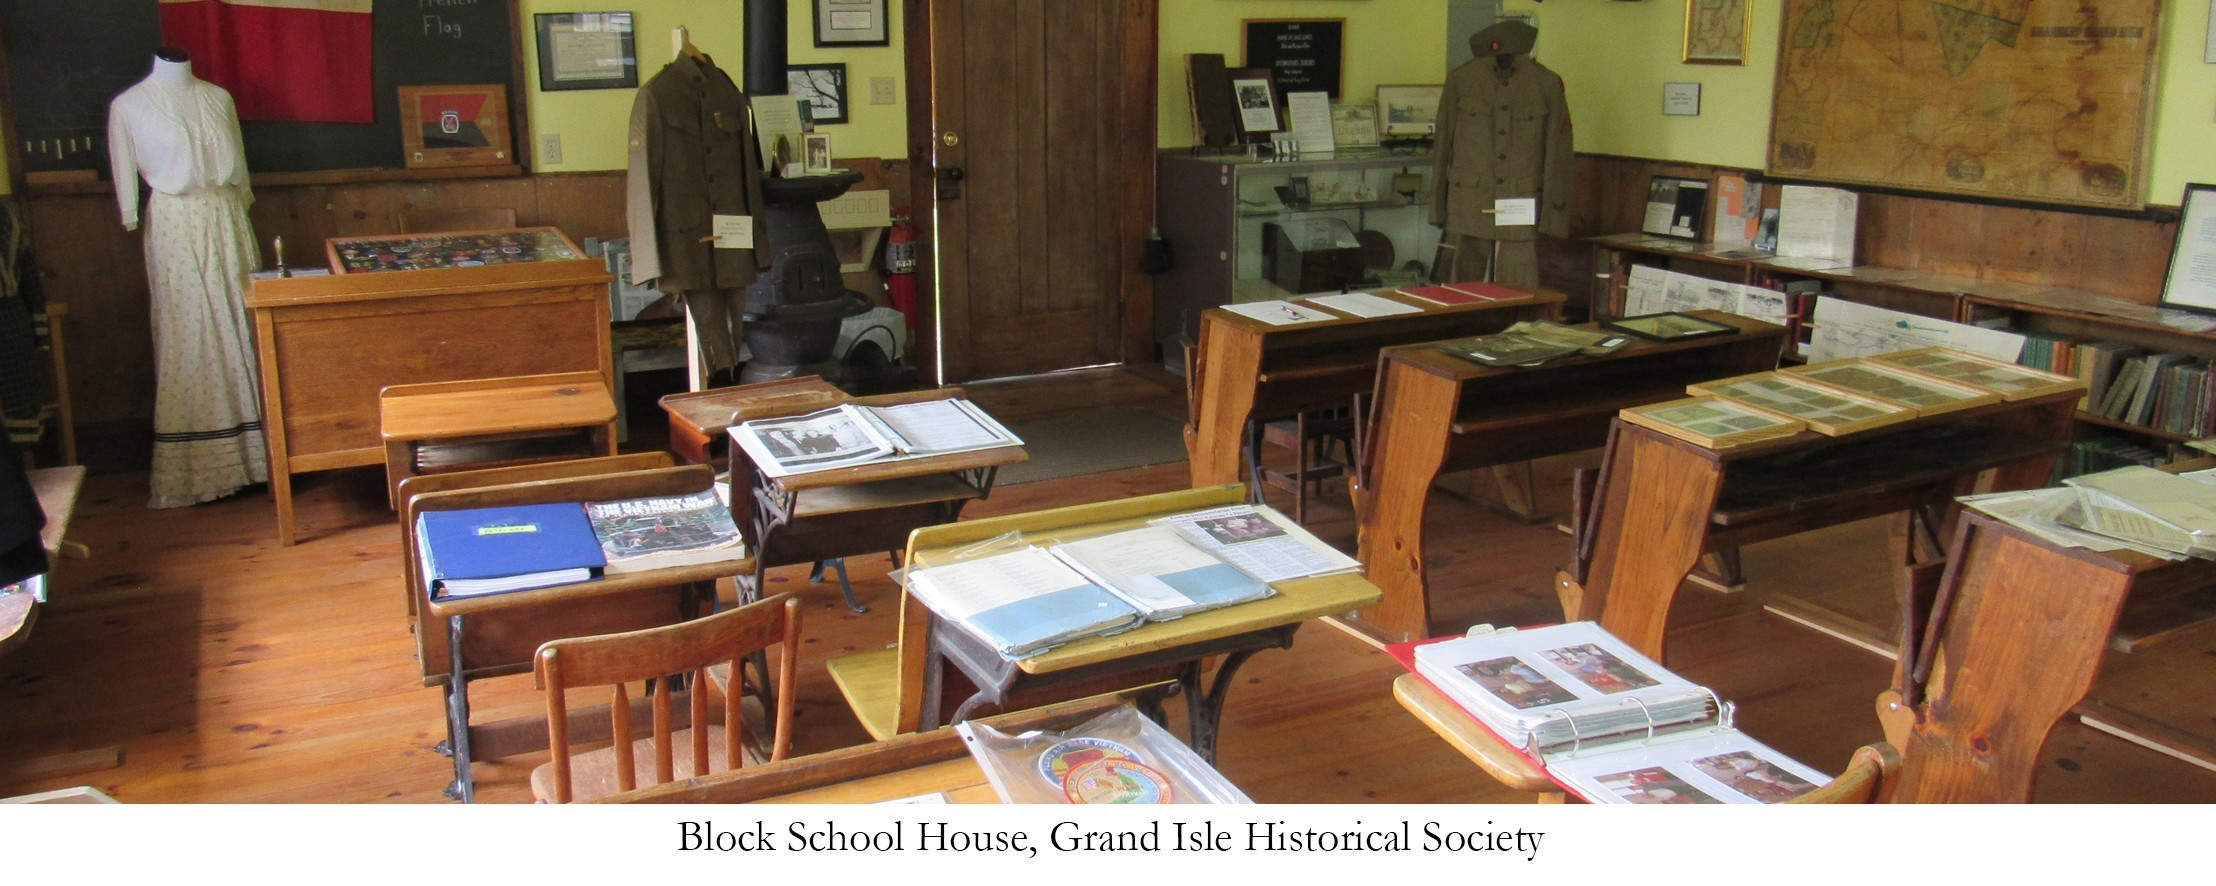 Block Schoolhouse, Grand Isle Historical Society